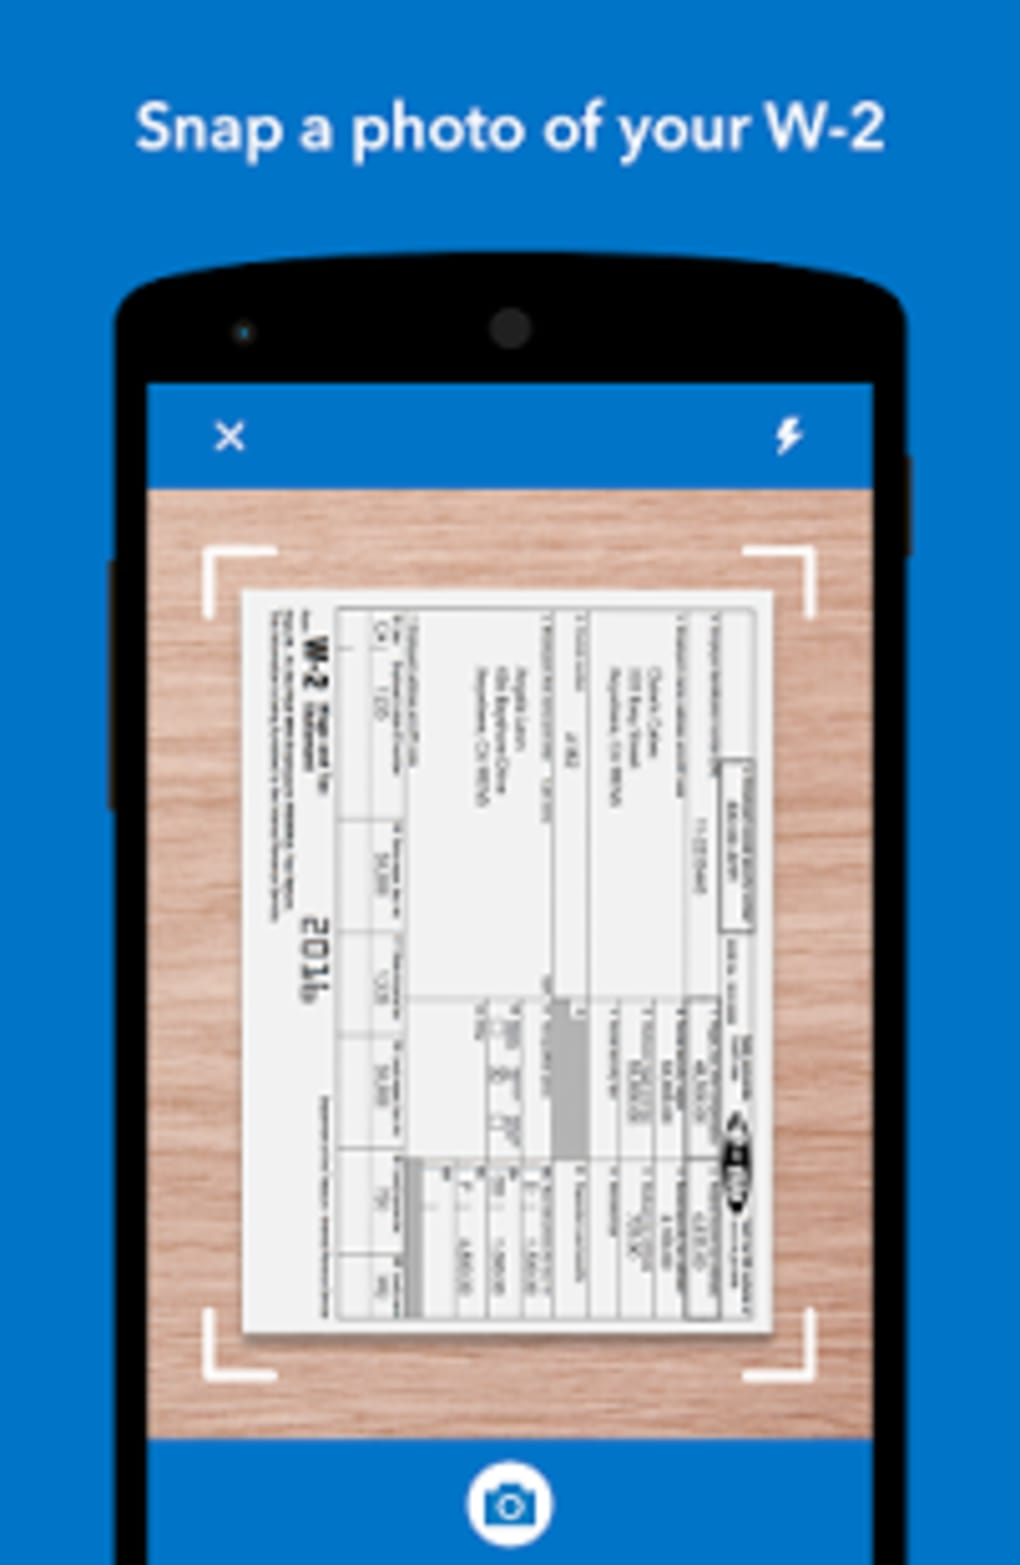 TurboTax Tax Return App for Android - Download